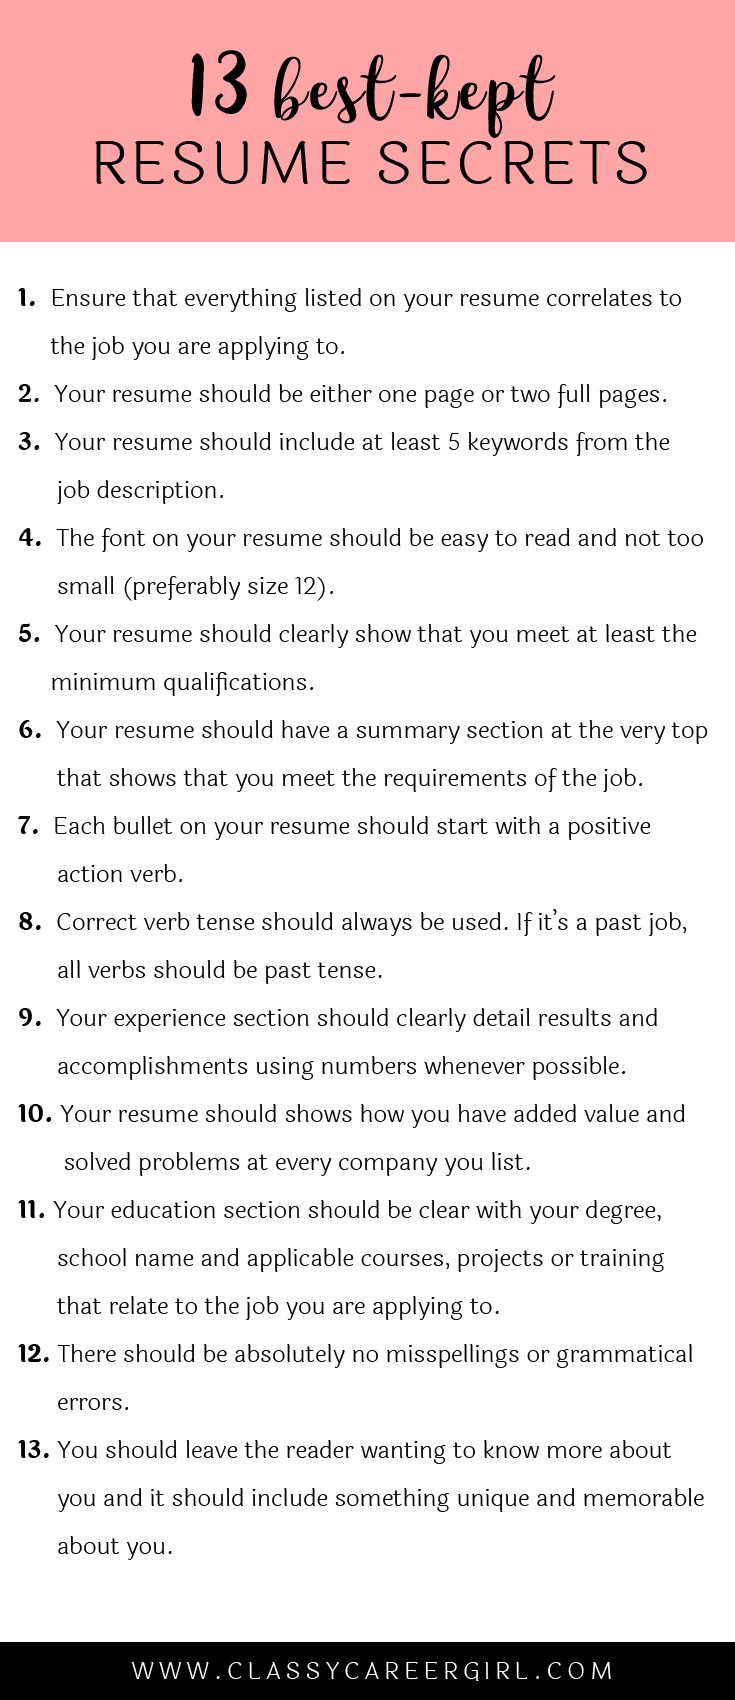 Opposenewapstandardsus  Mesmerizing  Ideas About Resume On Pinterest  Cv Format Resume Cv And  With Luxury Some Hiring Managers Will Toss Your Resume Out If You Dont Know These  With Divine Languages On Resume Also Warehouse Job Resume In Addition Teacher Resume Cover Letter And Resume Overview As Well As Communication On Resume Additionally Professional Resume Help From Pinterestcom With Opposenewapstandardsus  Luxury  Ideas About Resume On Pinterest  Cv Format Resume Cv And  With Divine Some Hiring Managers Will Toss Your Resume Out If You Dont Know These  And Mesmerizing Languages On Resume Also Warehouse Job Resume In Addition Teacher Resume Cover Letter From Pinterestcom